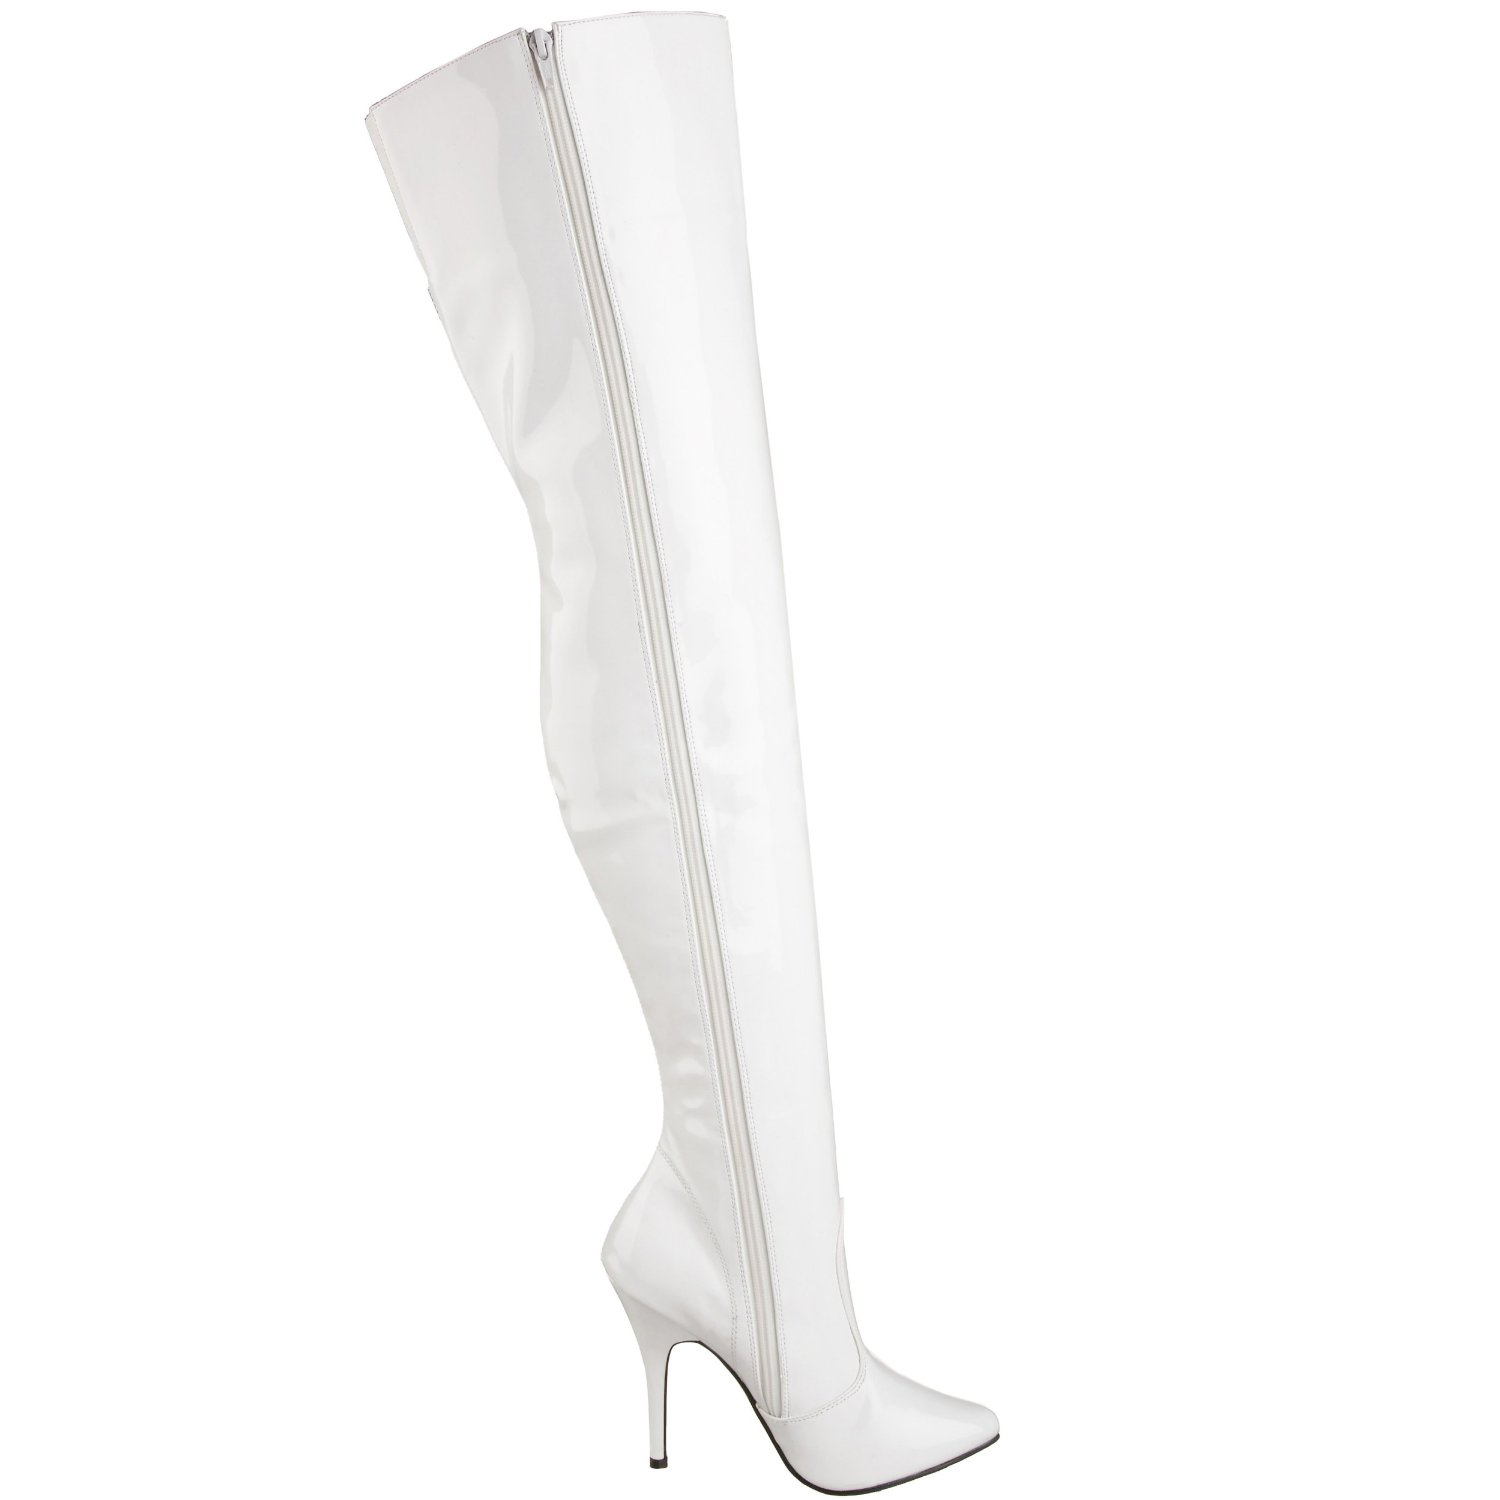 fashion trends thigh high boots 2017